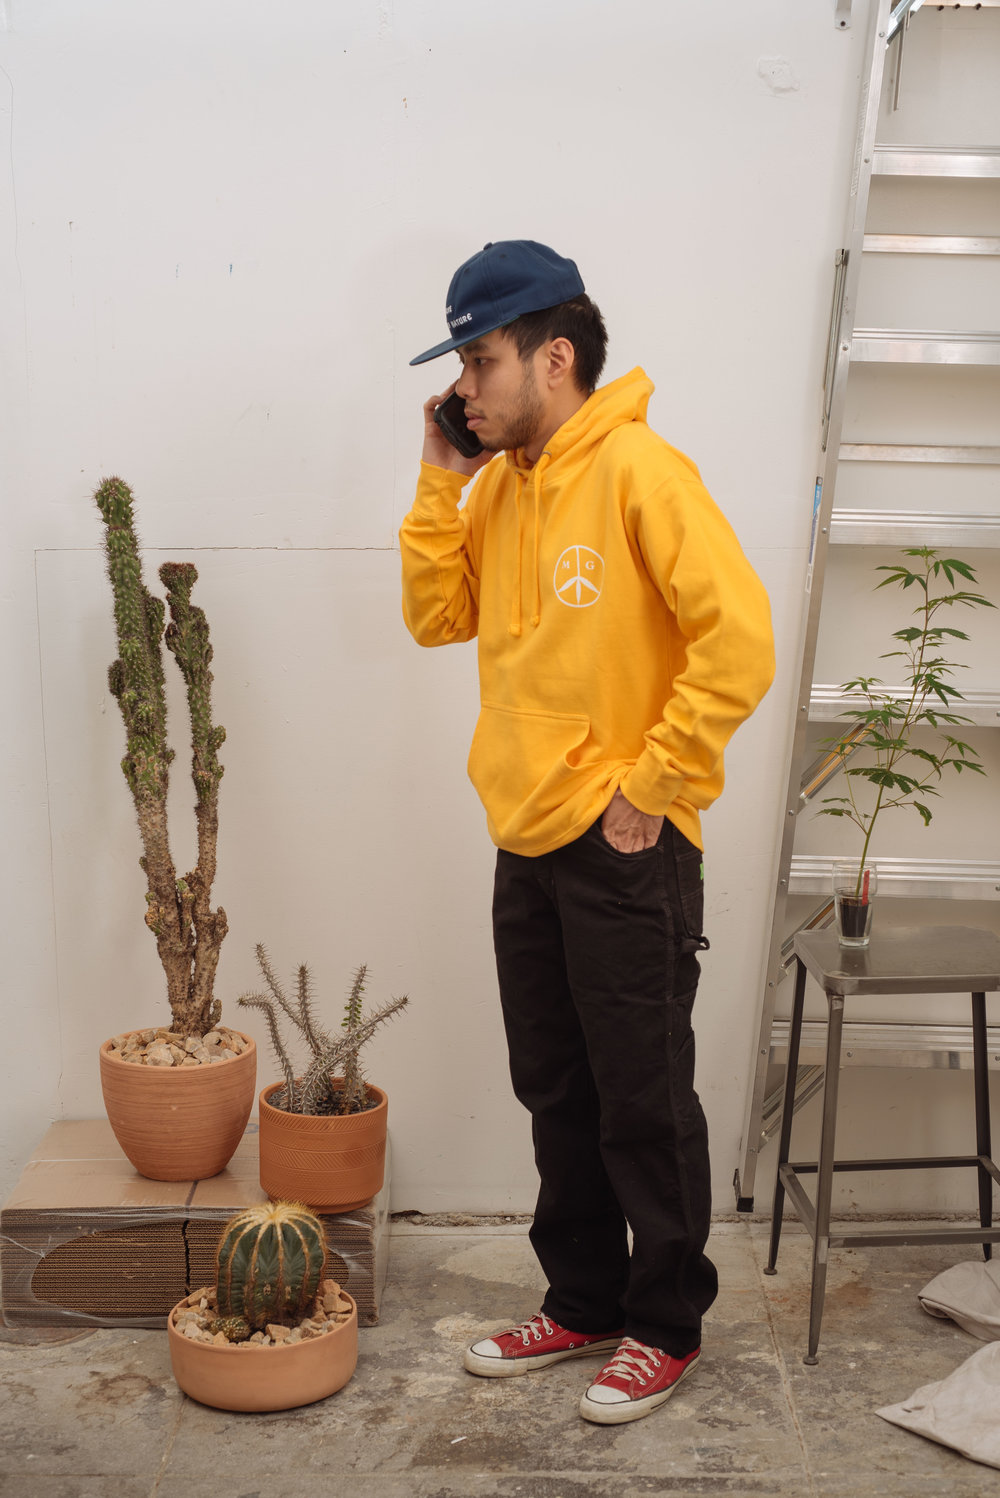 Smoke Mother Nature Cap - Navy   Peace Hoodie - Golden   Green Dickies - Black